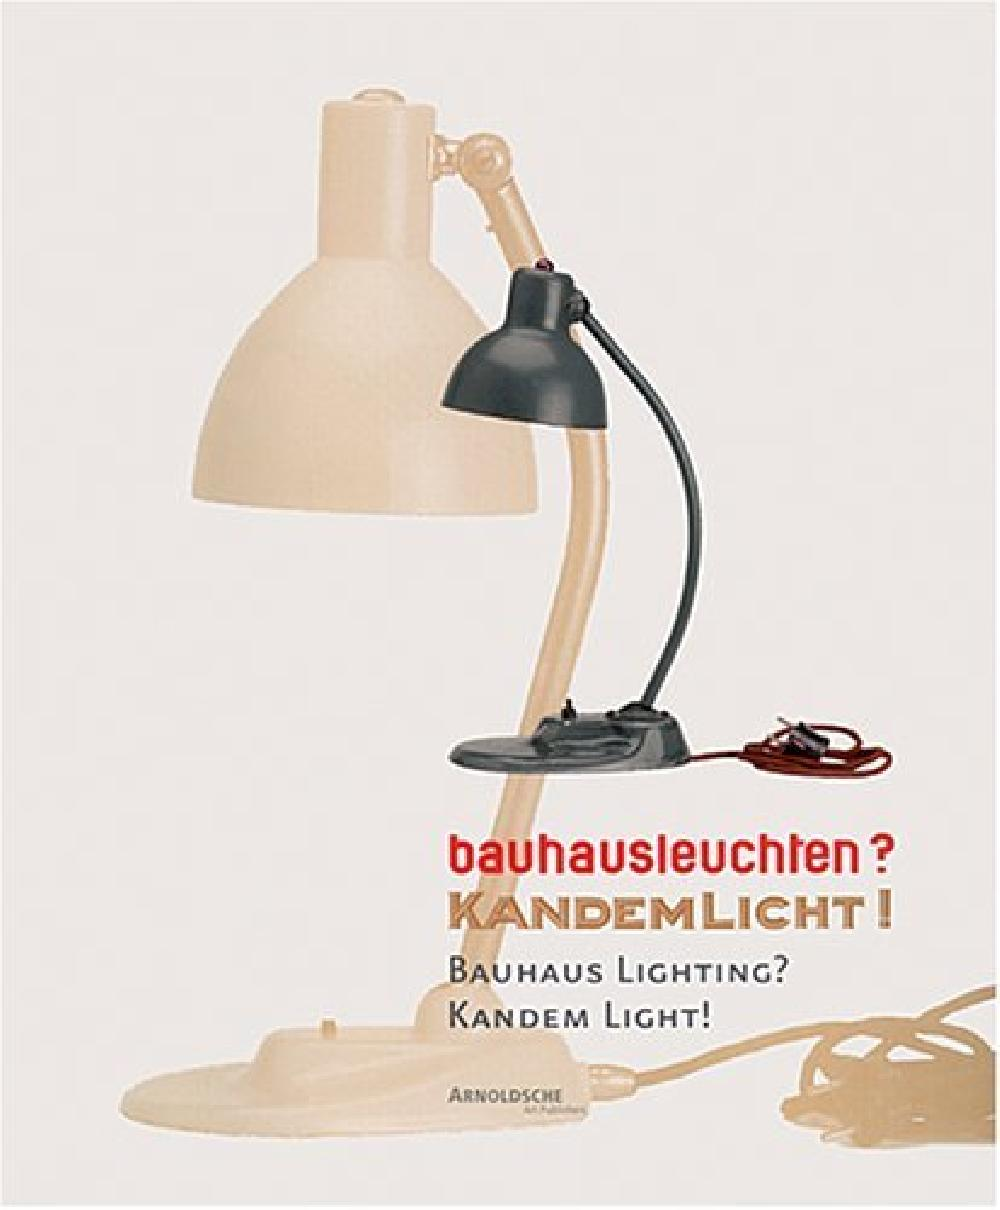 bauhausleuchten? Kandemlicht ! Bauhaus Lighting? Kandemn Light!